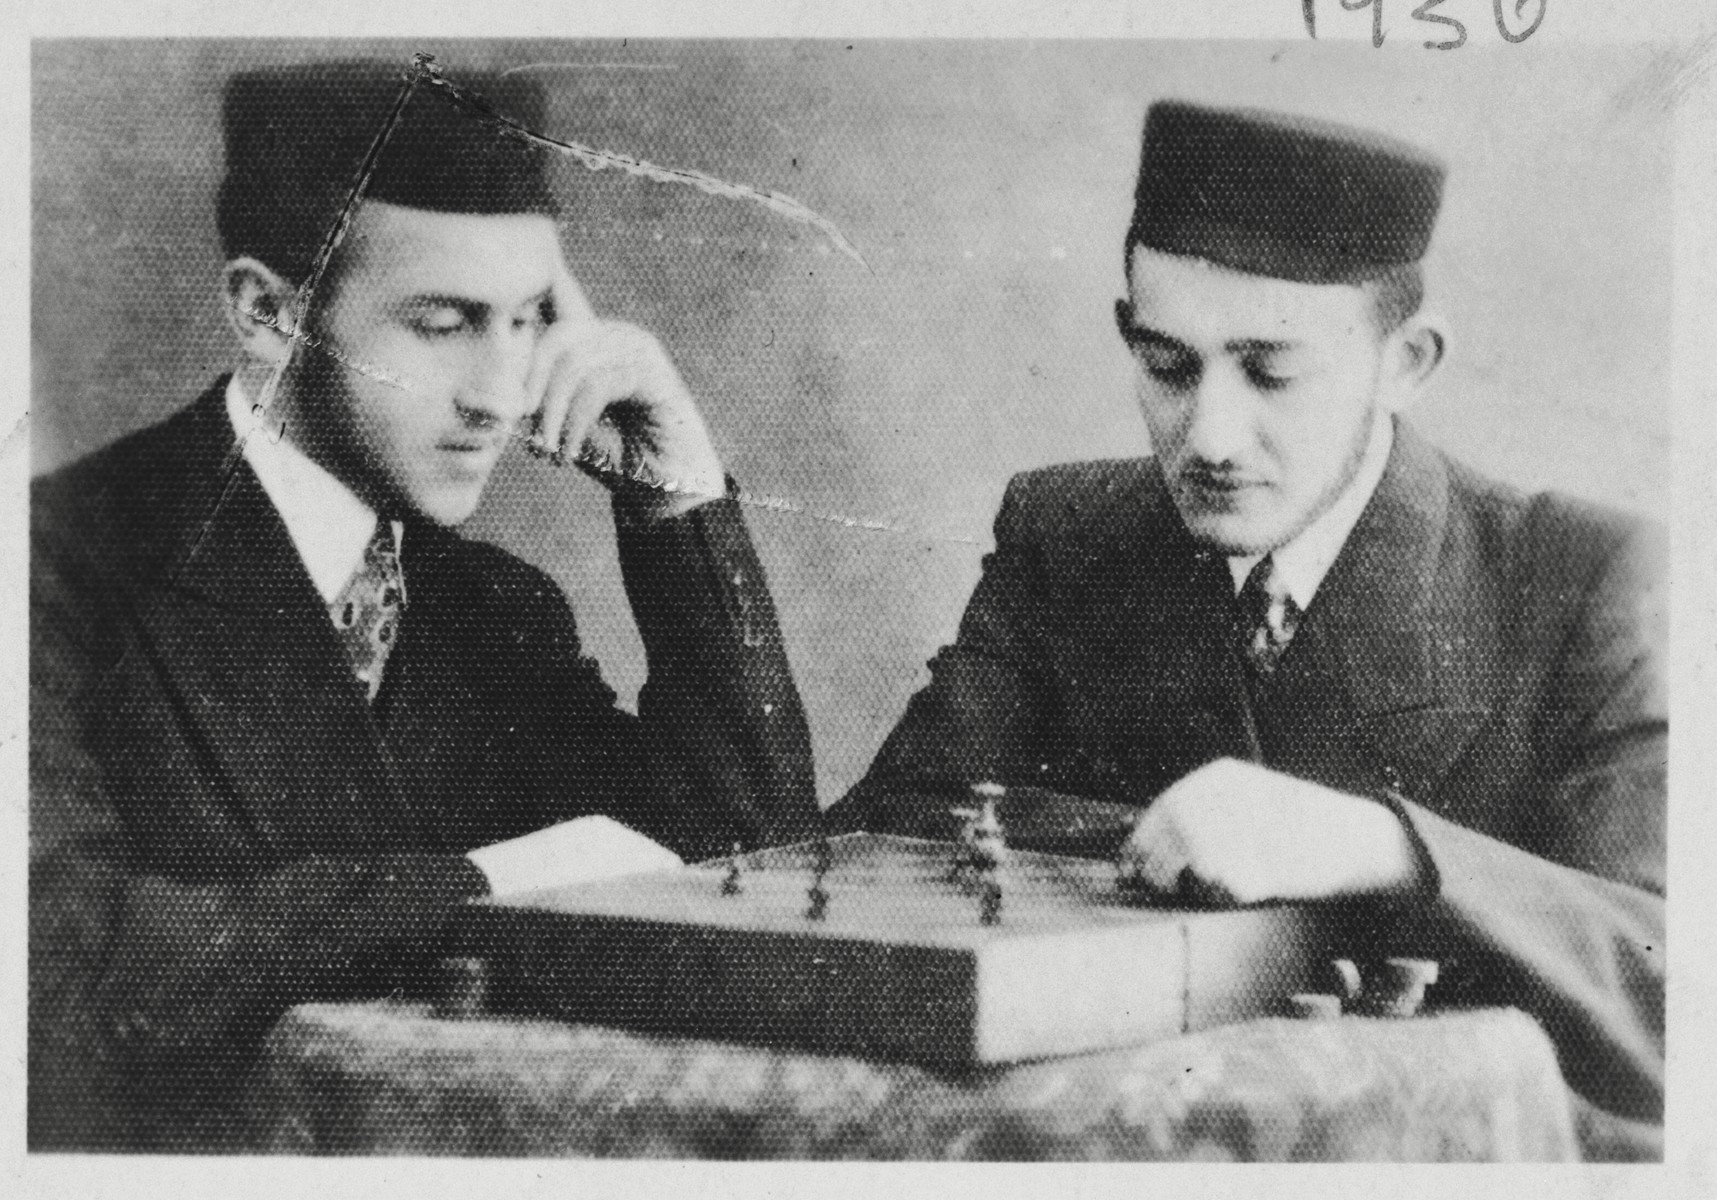 Two Hasidic youths play a game of chess.  Tadek Majranc is pictured on the right.